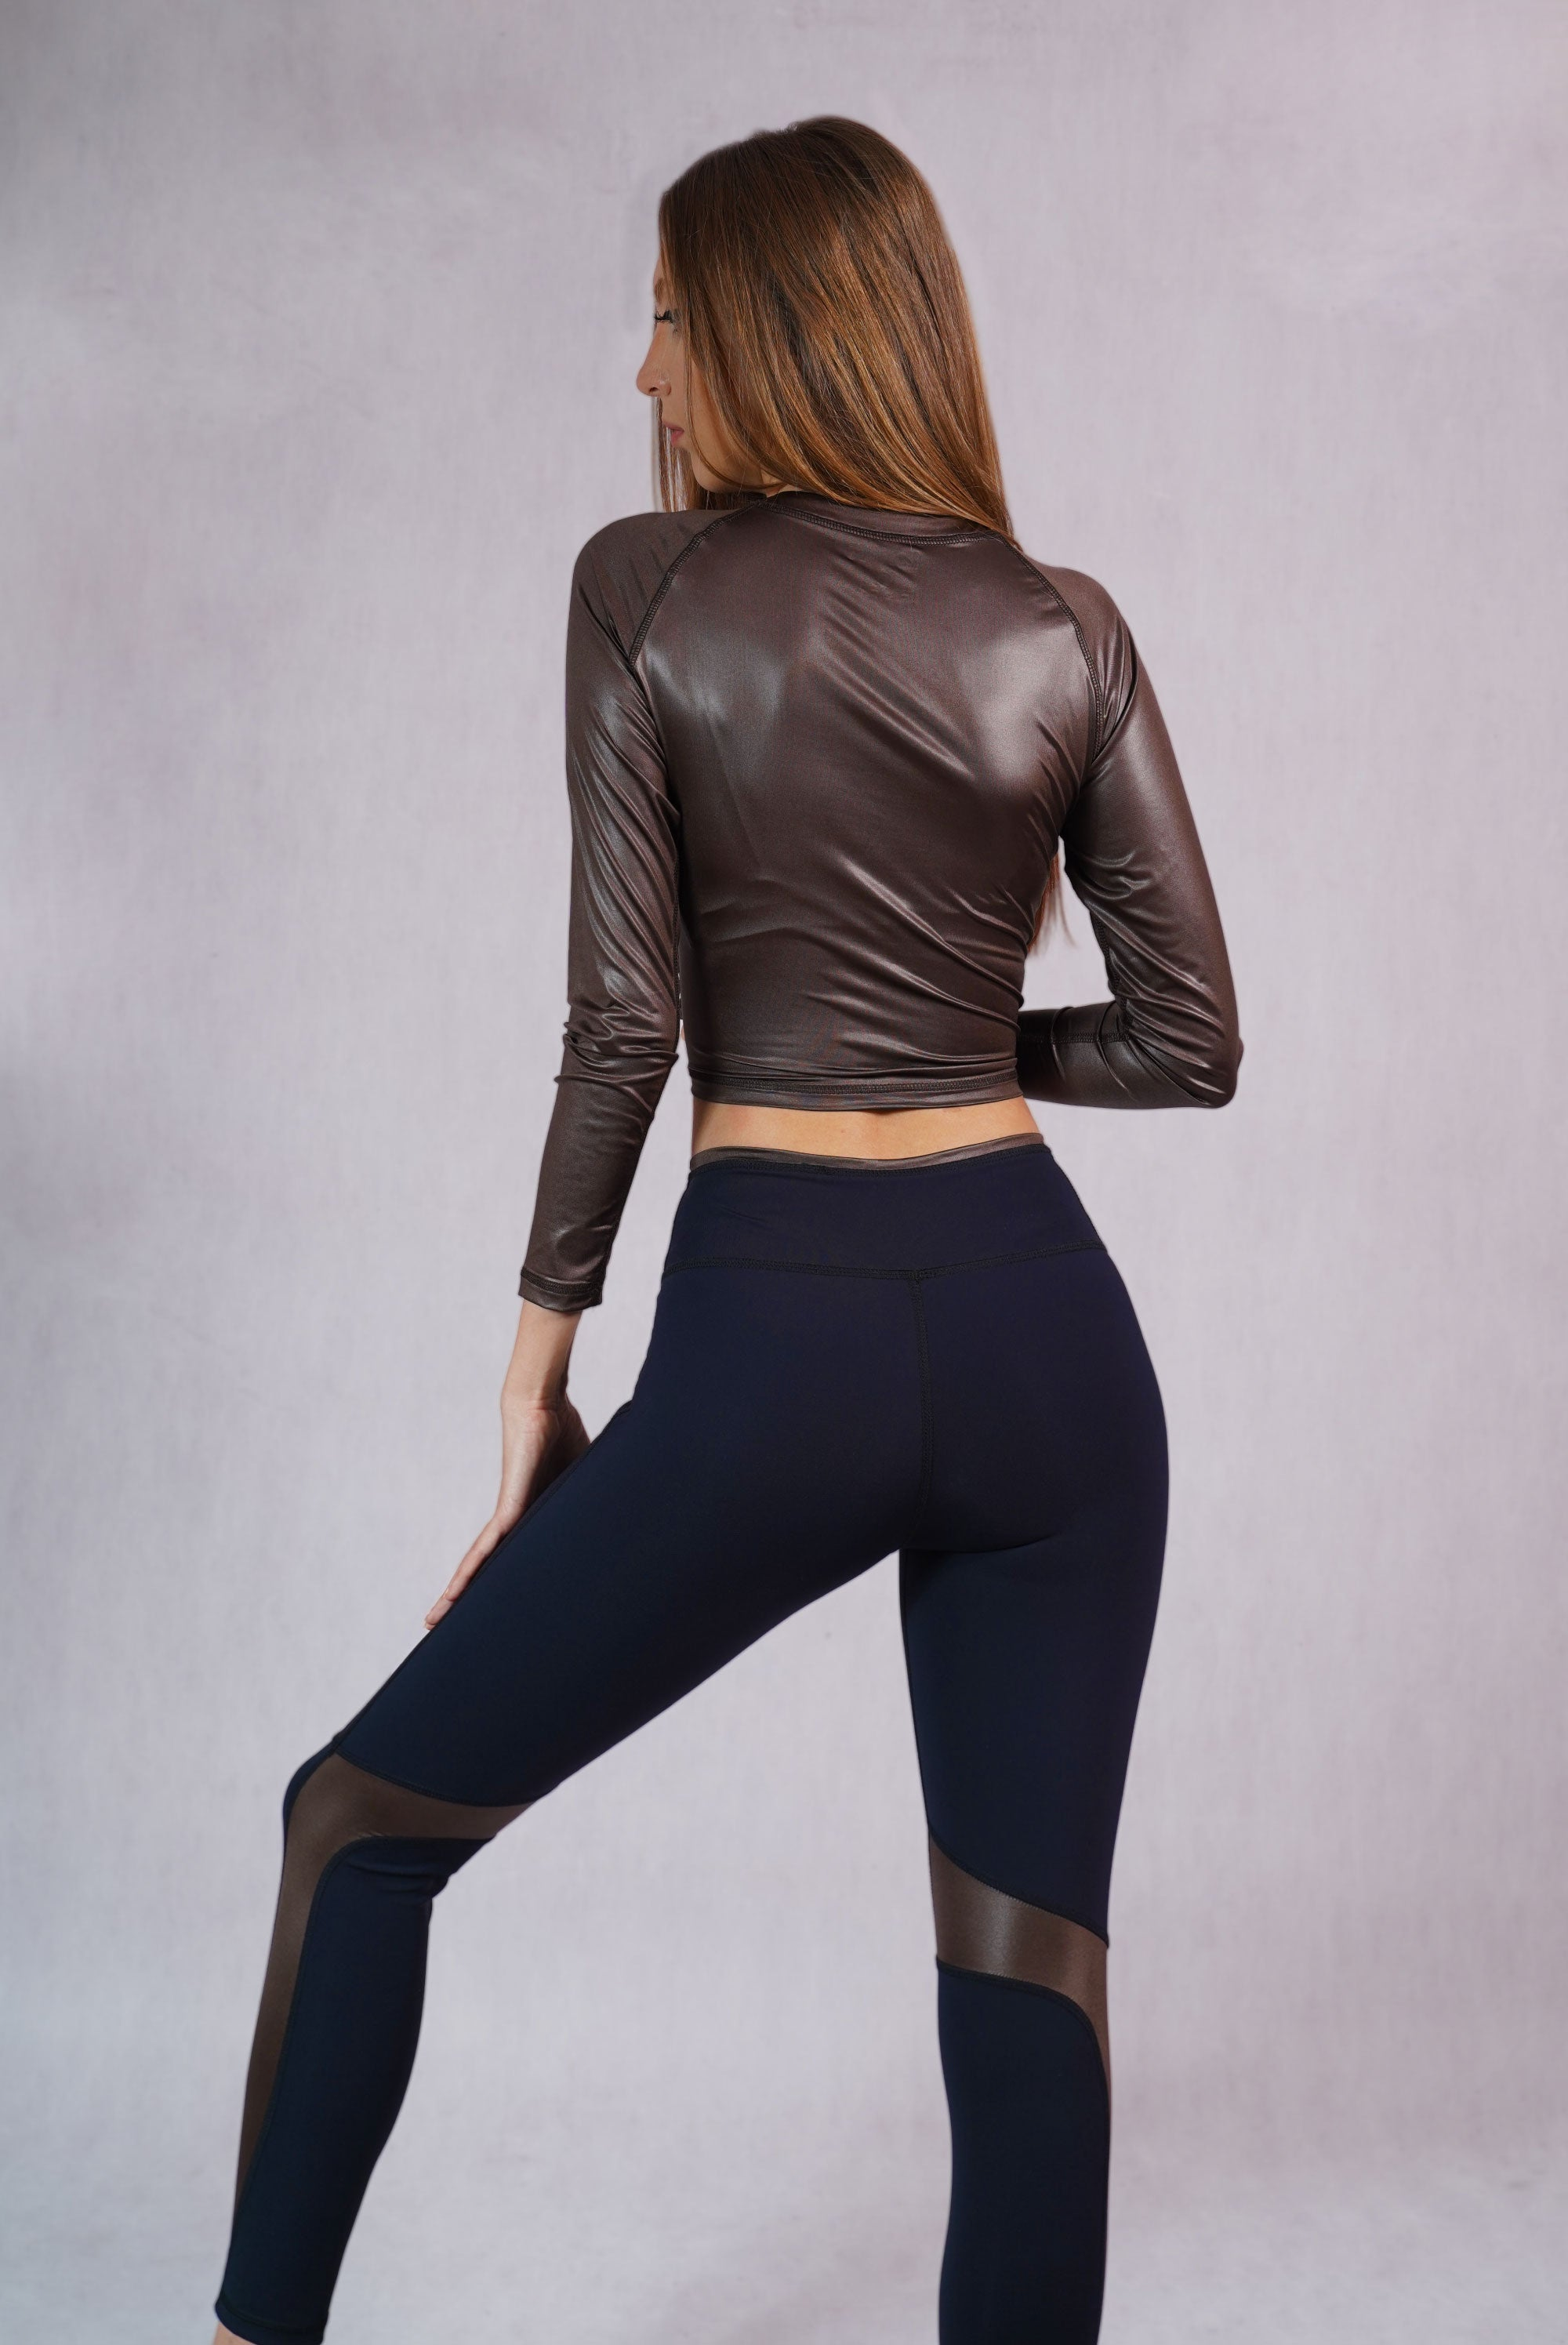 Glossy Detail Leggings Black/Brown - C112008